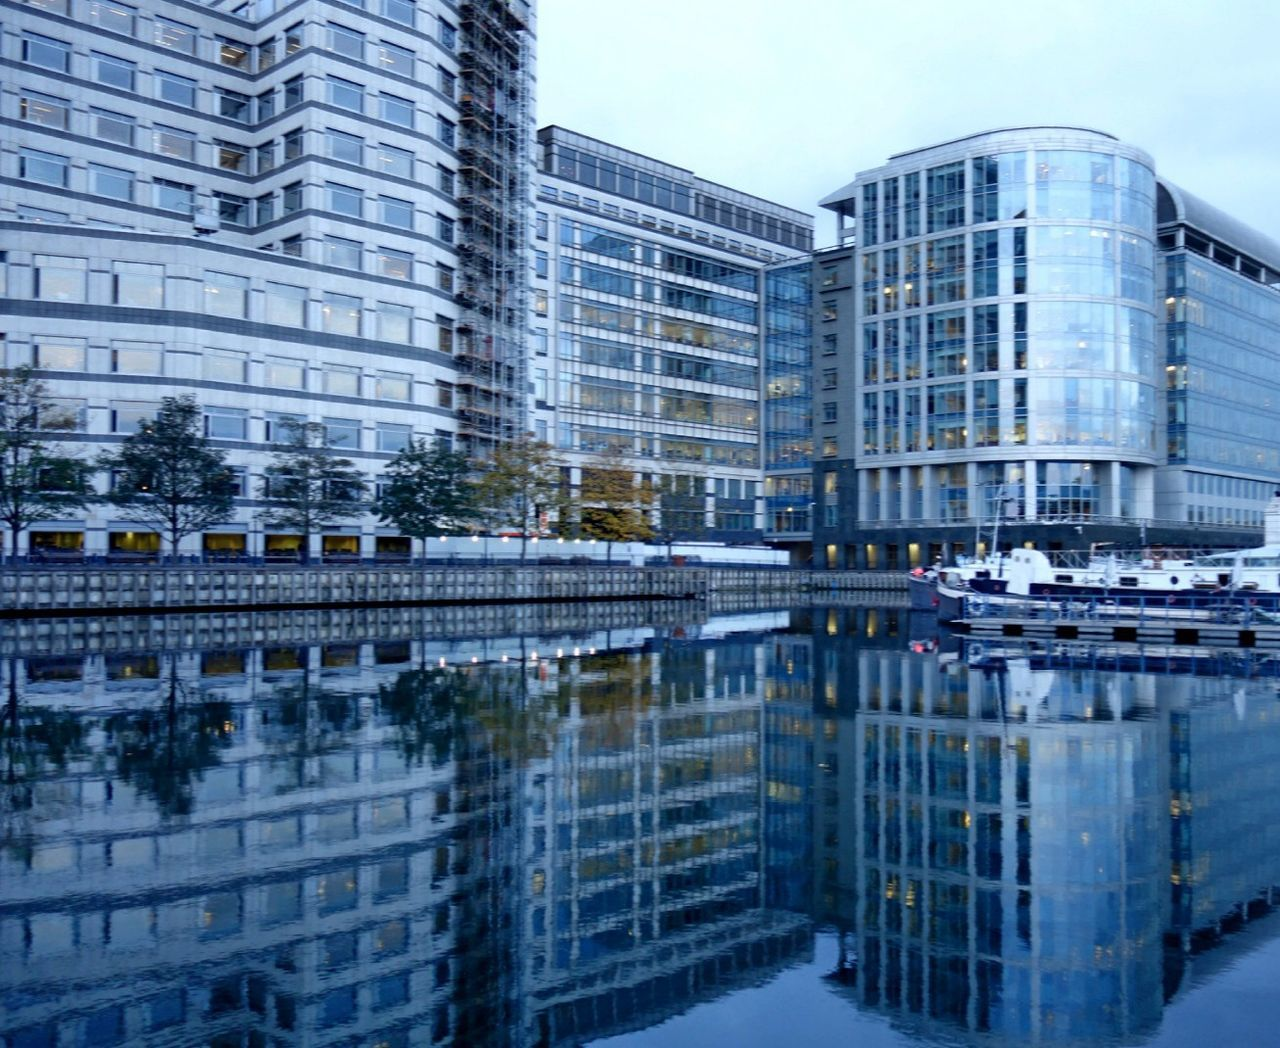 London Lifestyle Reflection Architecture Water Building Exterior Built Structure City Canary Wharf Skyscraper Modern Financial District  No People Office Building Exterior Cityscape Waterfront Sky UrbanTrends City Of London Urban Landscape LONDON❤ United Kingdom City Life Eyeem Galery Water Reflections Residential Building